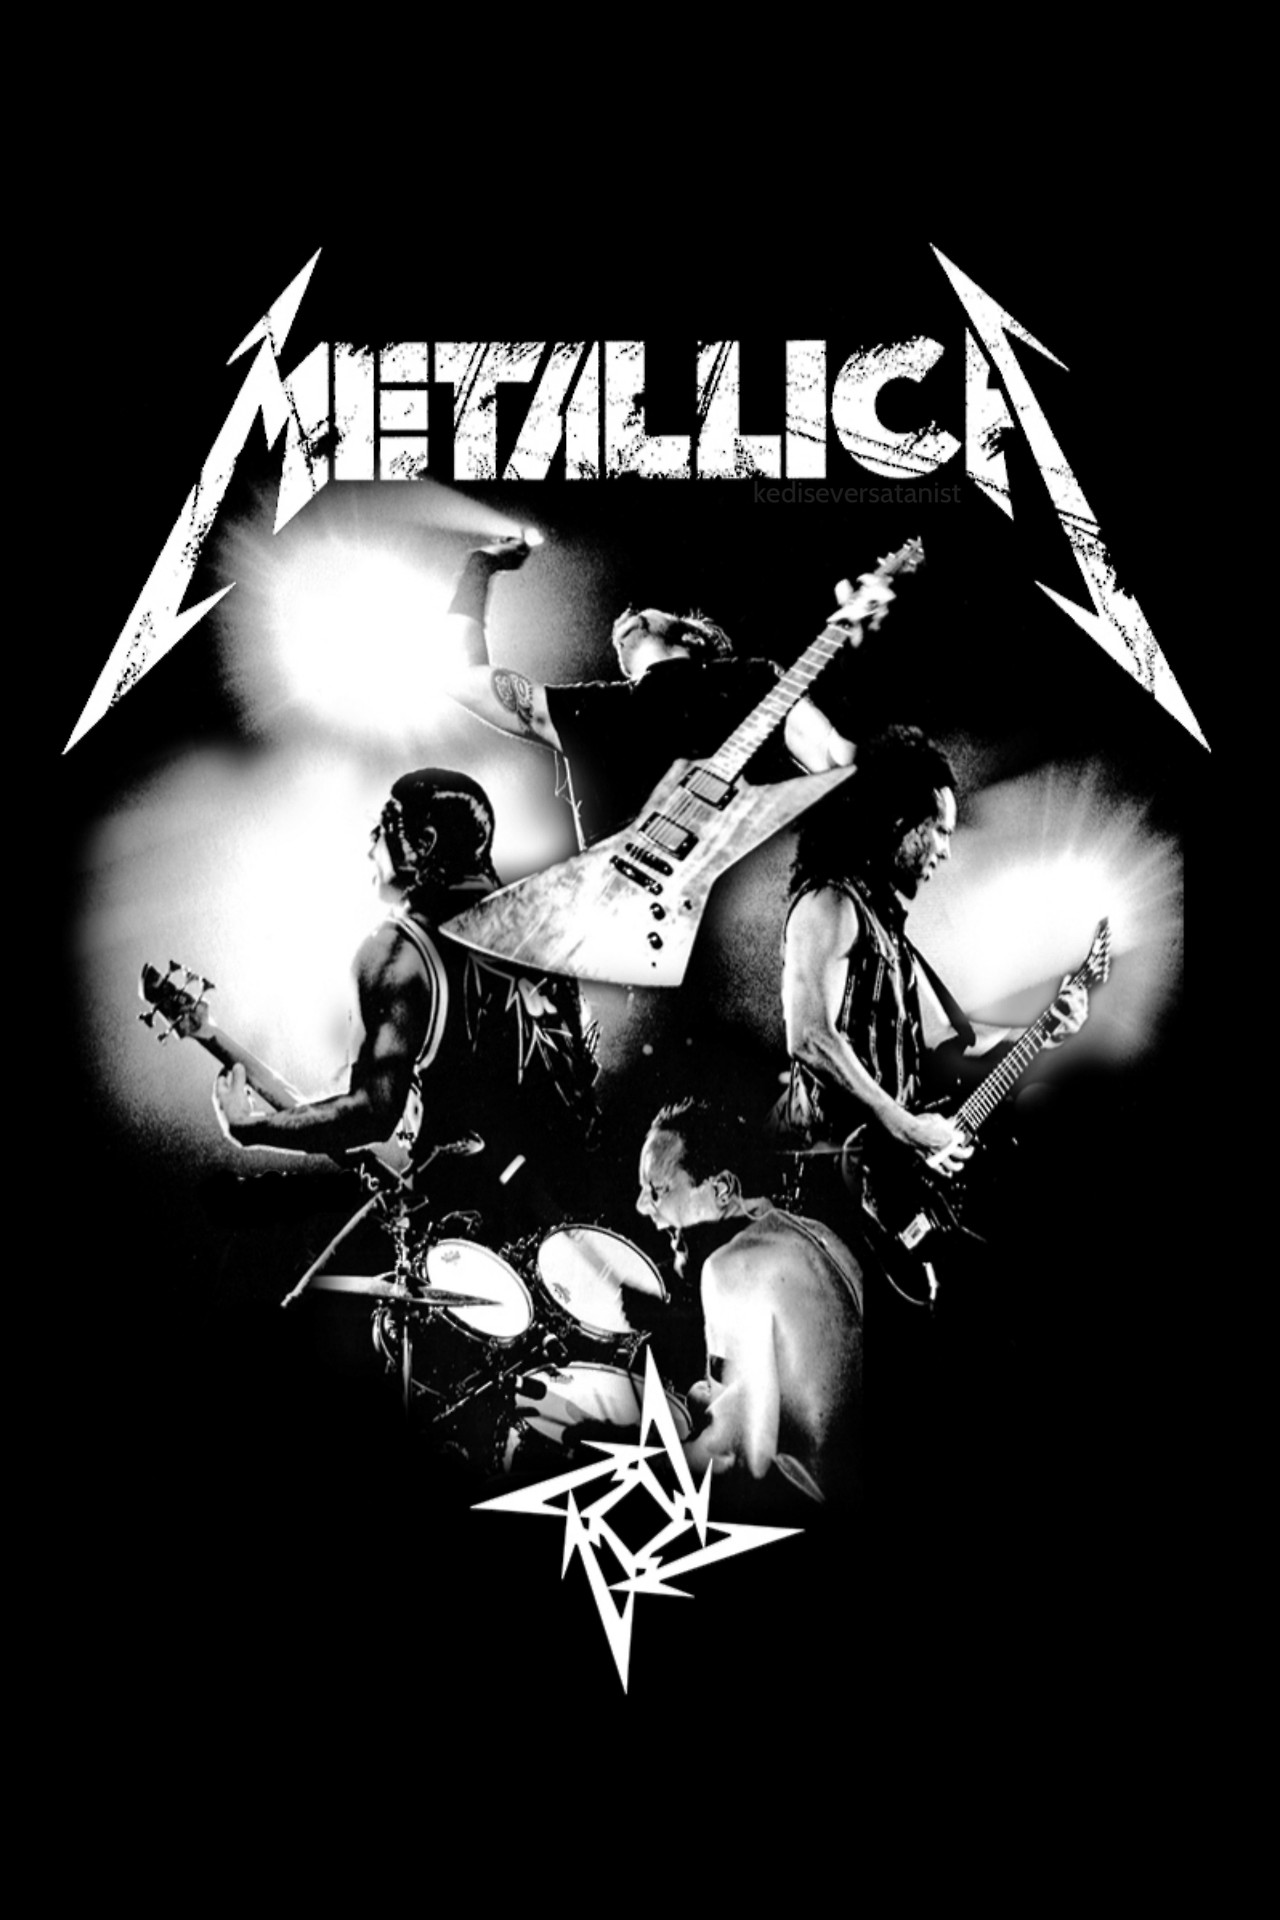 1920x1080 Download This Free Wallpaper With Images Of Metallica Kill Em All Ride The Lightning Master Puppets